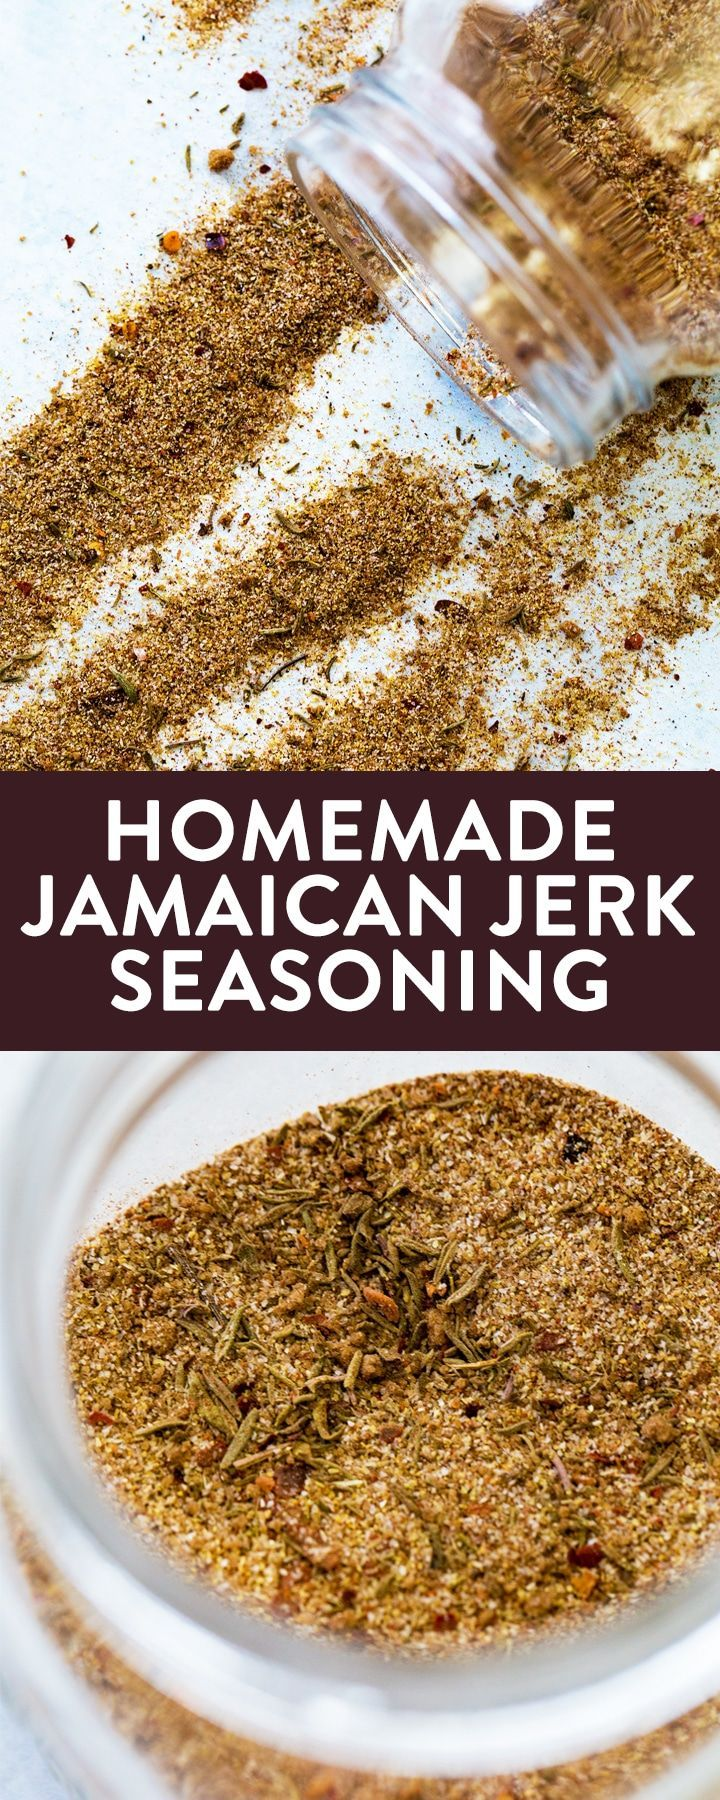 This homemade Jamaican jerk seasoning is a low calorie way to spice up your chicken or pork dish. It's sweet, tropical, and a little spicy. Perfect on BBQ chicken or as a rib rub. Make this for your barbecue recipes this summer! #thebewitchinkitchen #jamaicanjerk #jerkseasoning #homemadejerkseasoning #homemadejamaicanjerkseasoning #chickenrecipes #ribrecipes #ribrub #tropicalrecipes